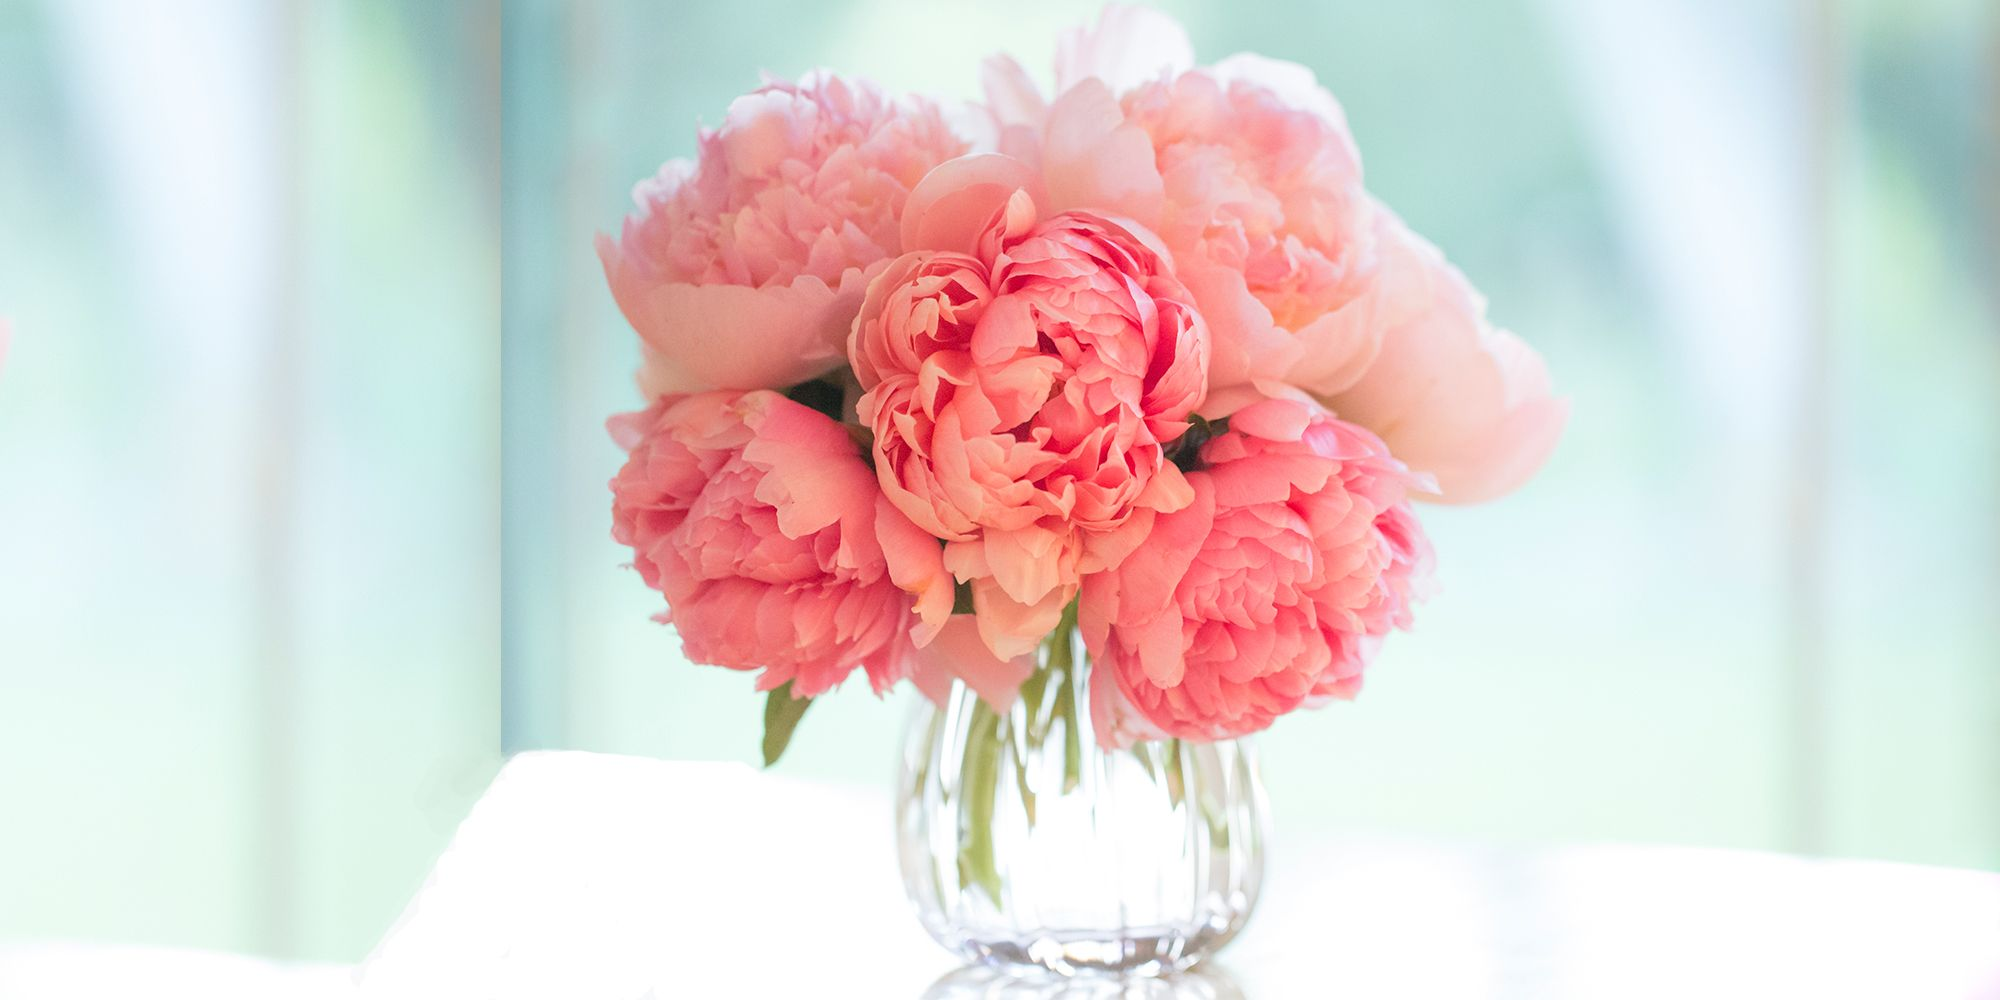 11 Best Flowers For Valentines Day Popular Roses Arrangements